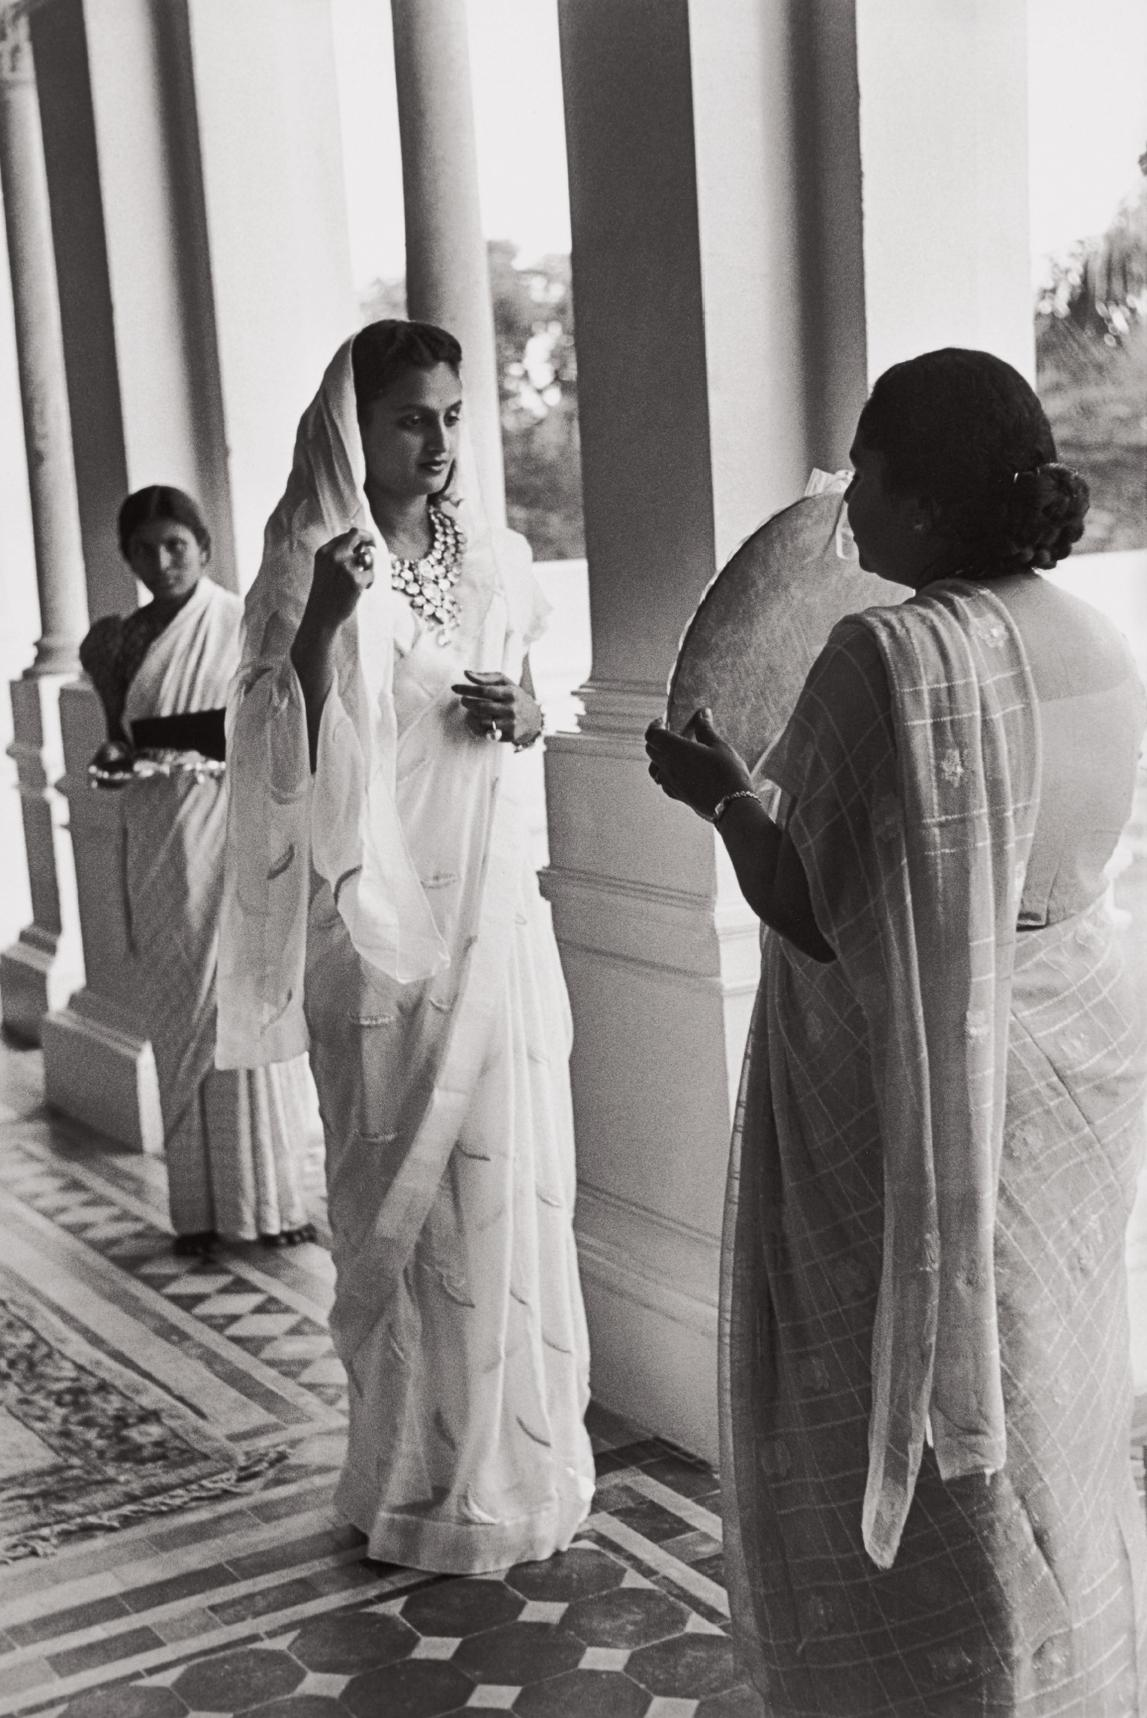 Henri Cartier-Bresson-Festivities For The 39Th Birthday Of The Maharajah (The Diamonds Once Belong To Napoleon), Gujarat, Baroda [Vadodara], India-1948